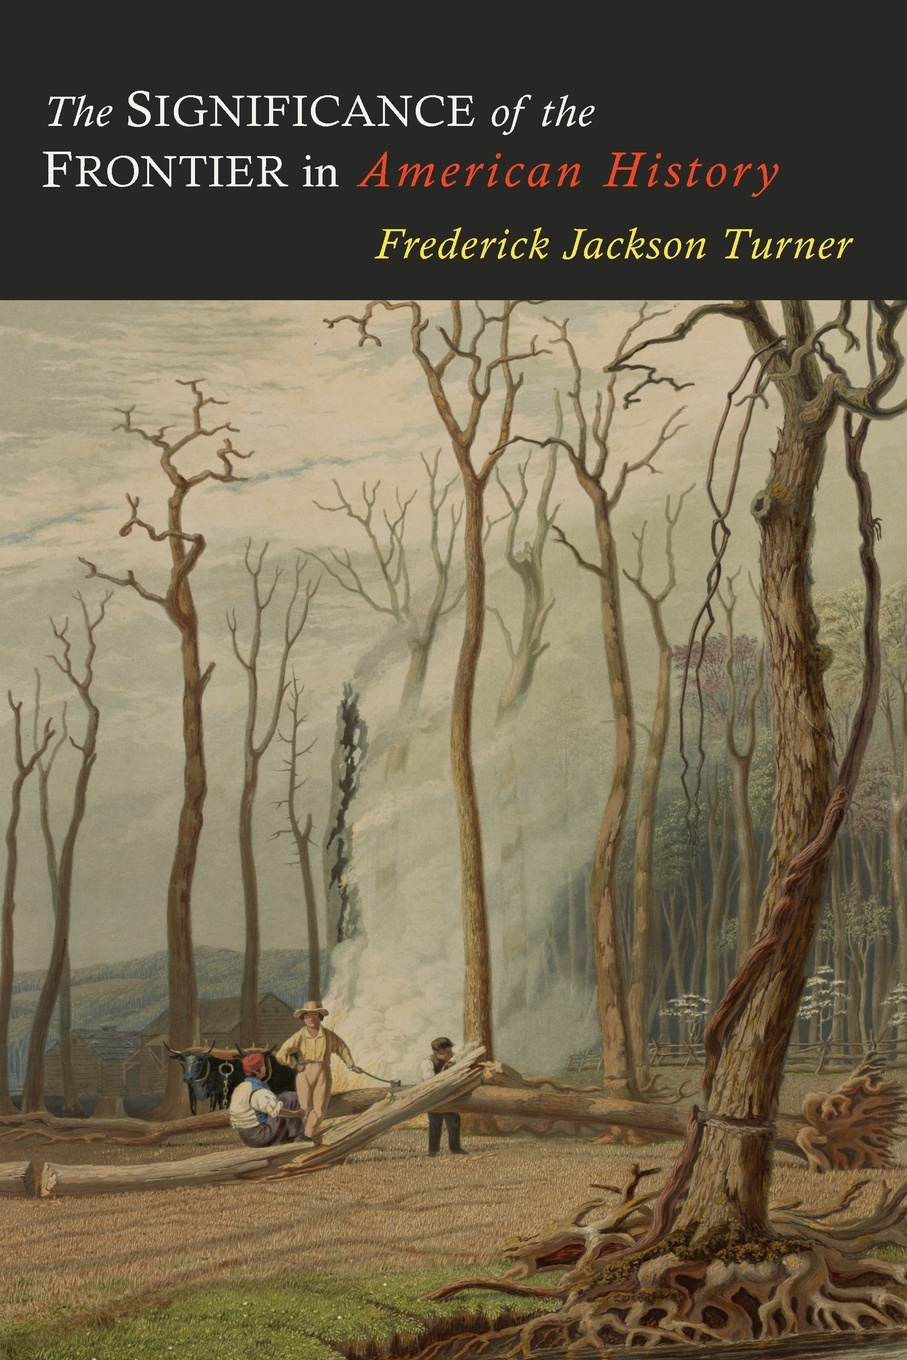 Frederick Jackson Turner The Significance of the Frontier in American History